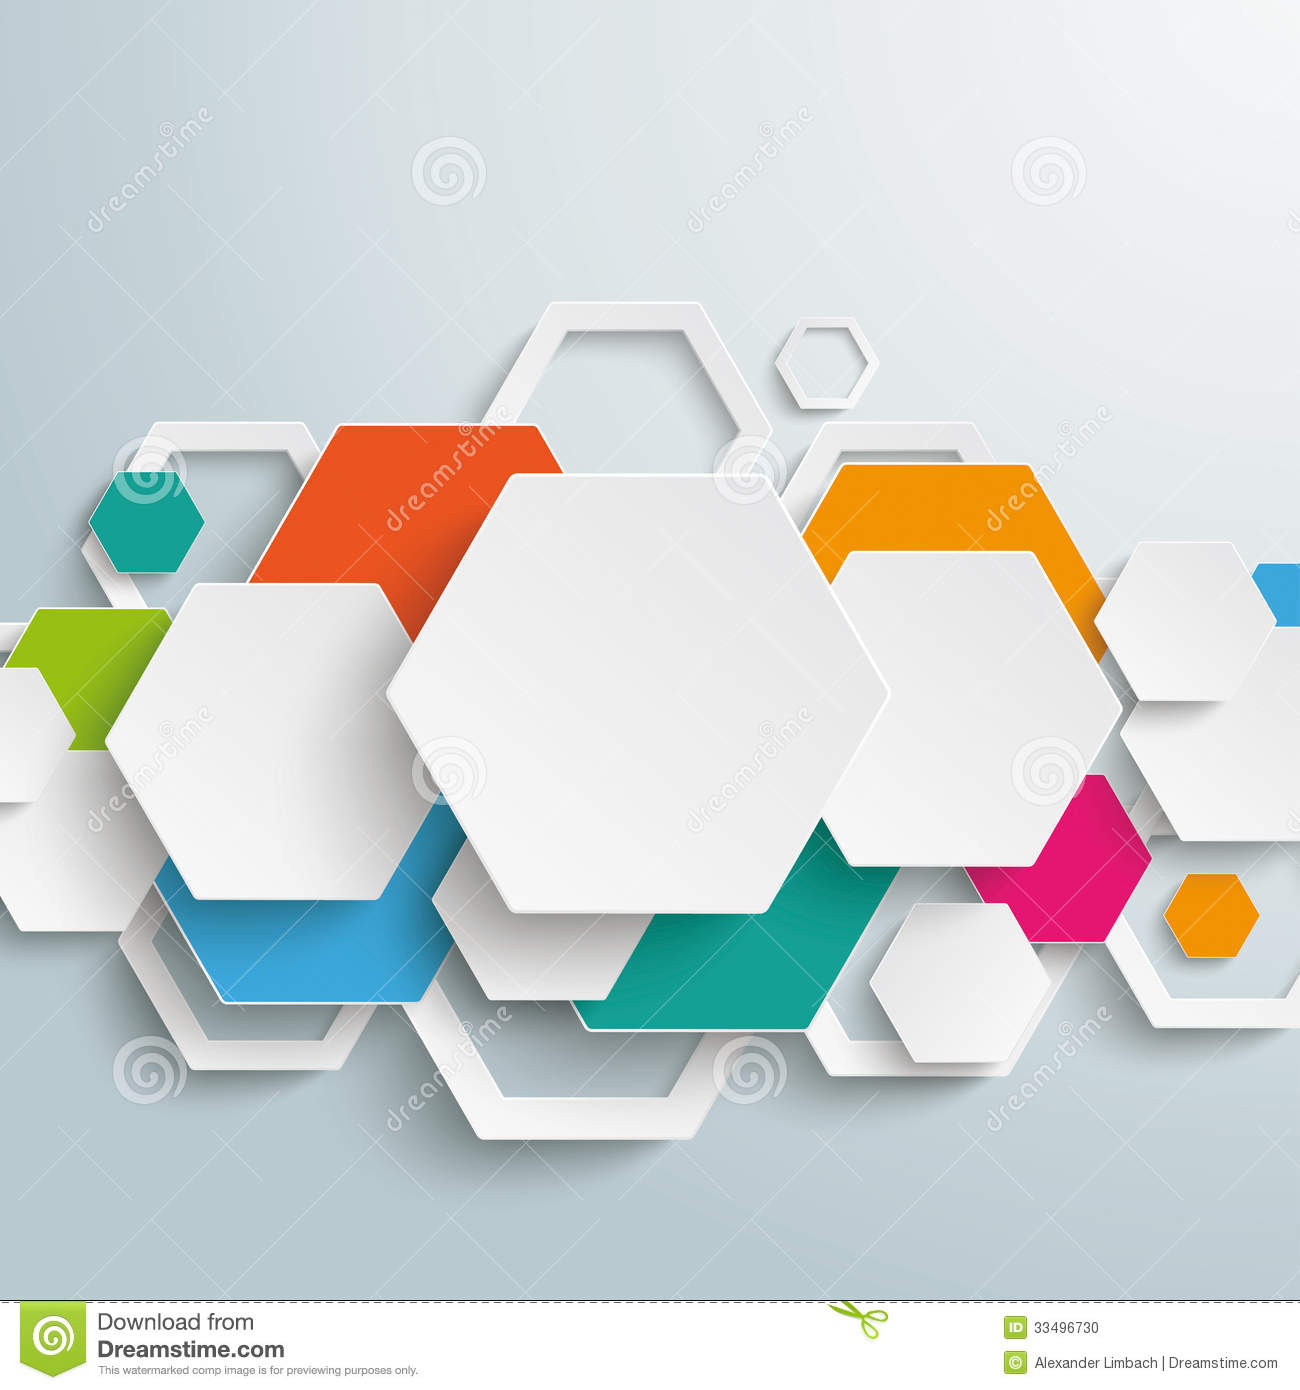 Infographic design on the grey background eps 10 vector file - Infographic Colored Paper Hexagons Line Piad Stock Photo